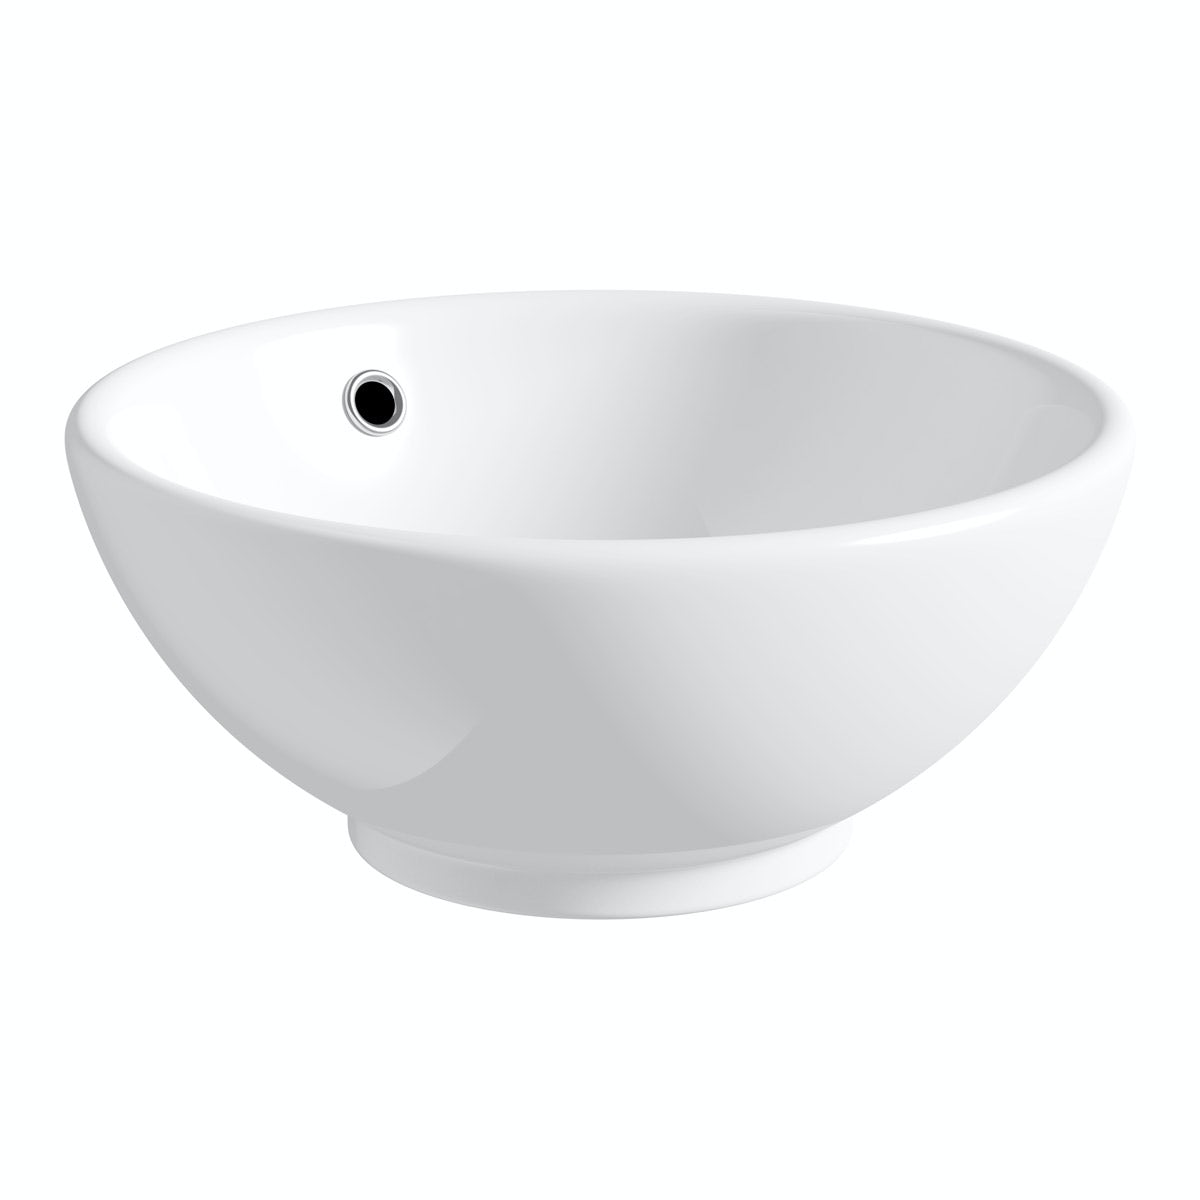 Orchard Eden countertop basin 400mm